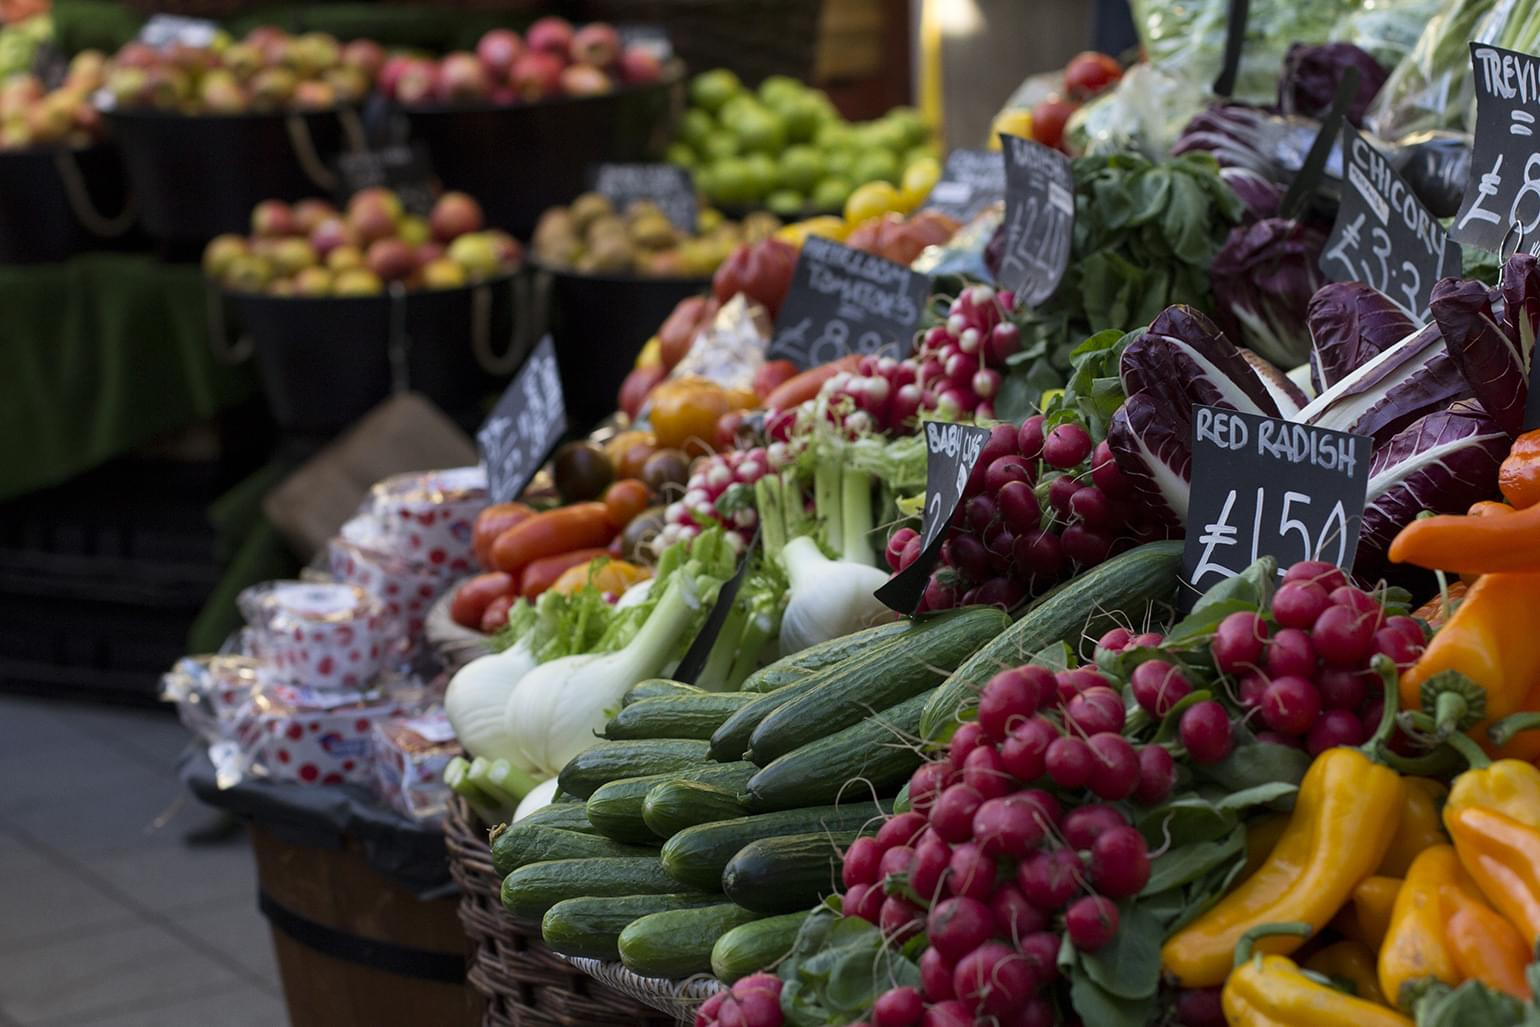 Fruits and vegetables display in a small grocery store.